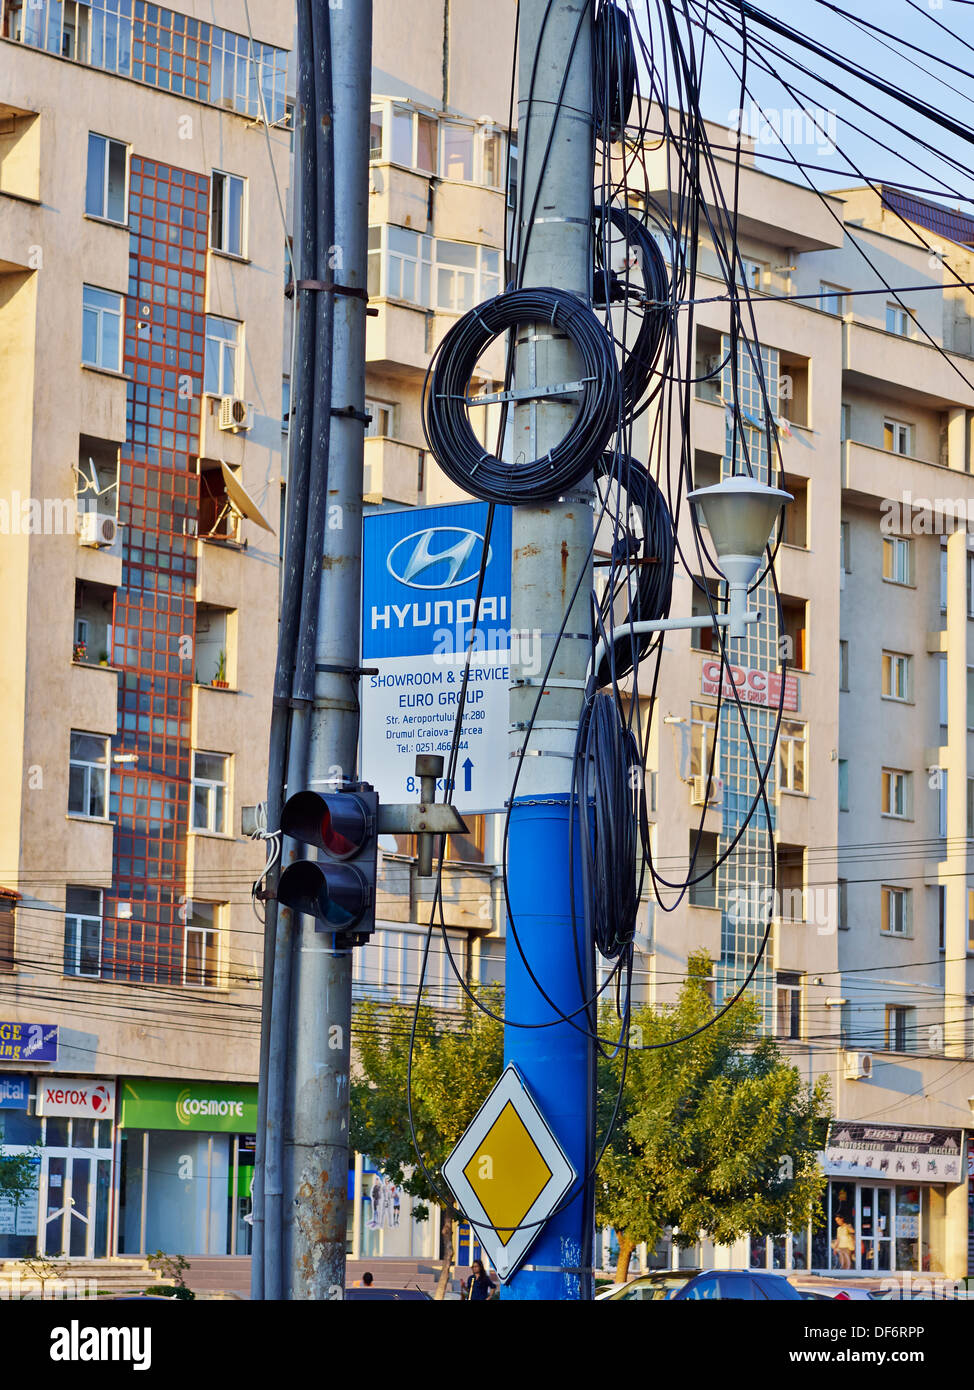 Chaotic telecommunication cabling on a street pool in Craiova, Romania. - Stock Image